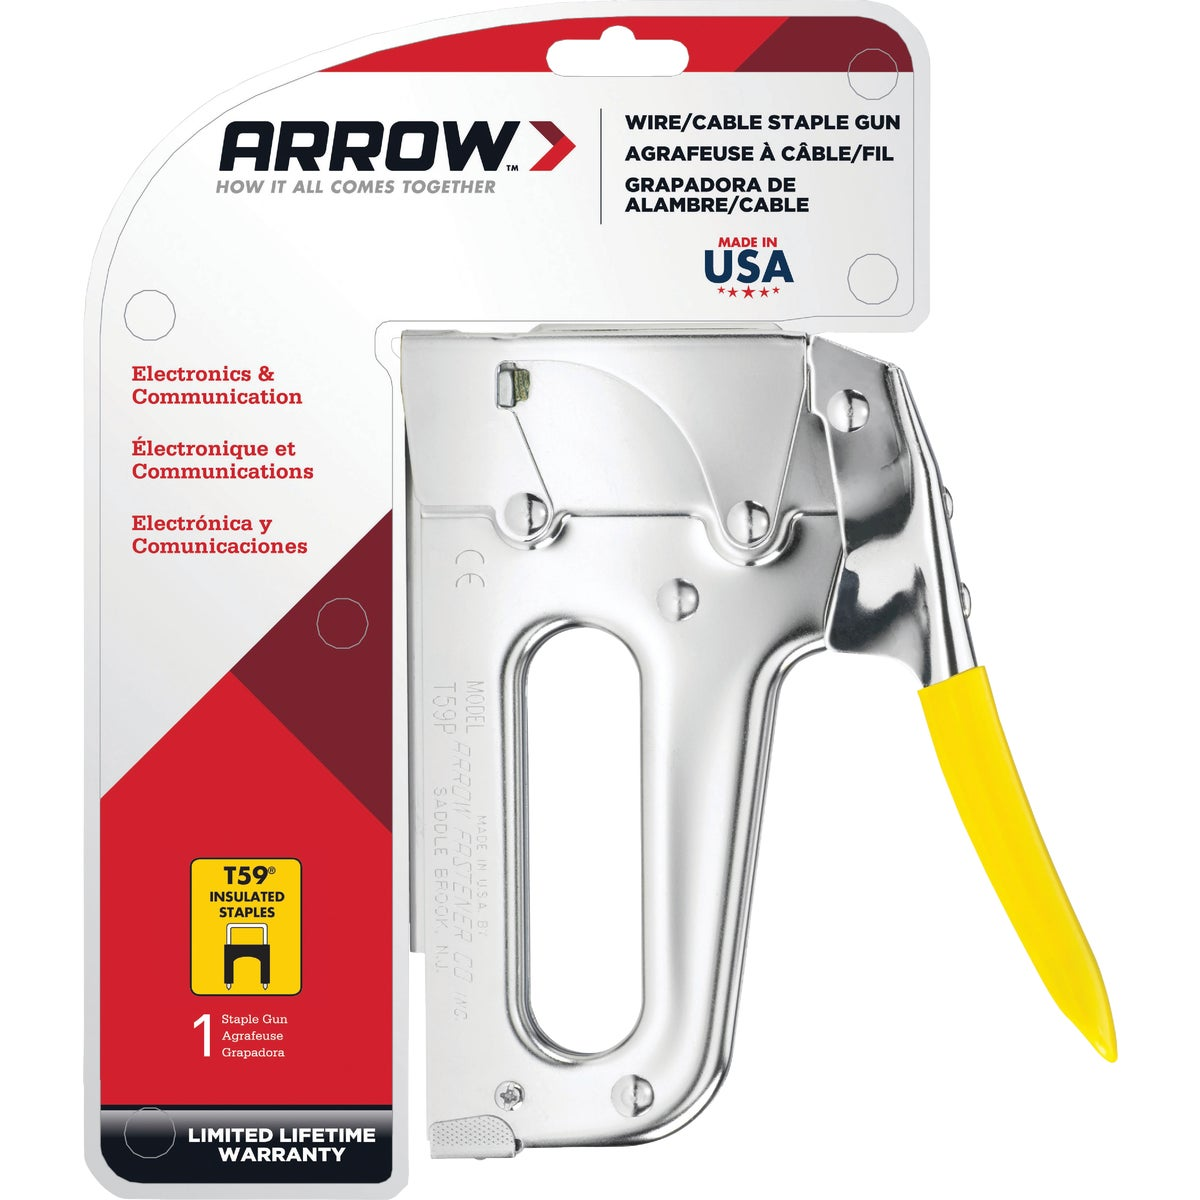 WIRING STAPLE GUN - T59 by Arrow Fastener Co